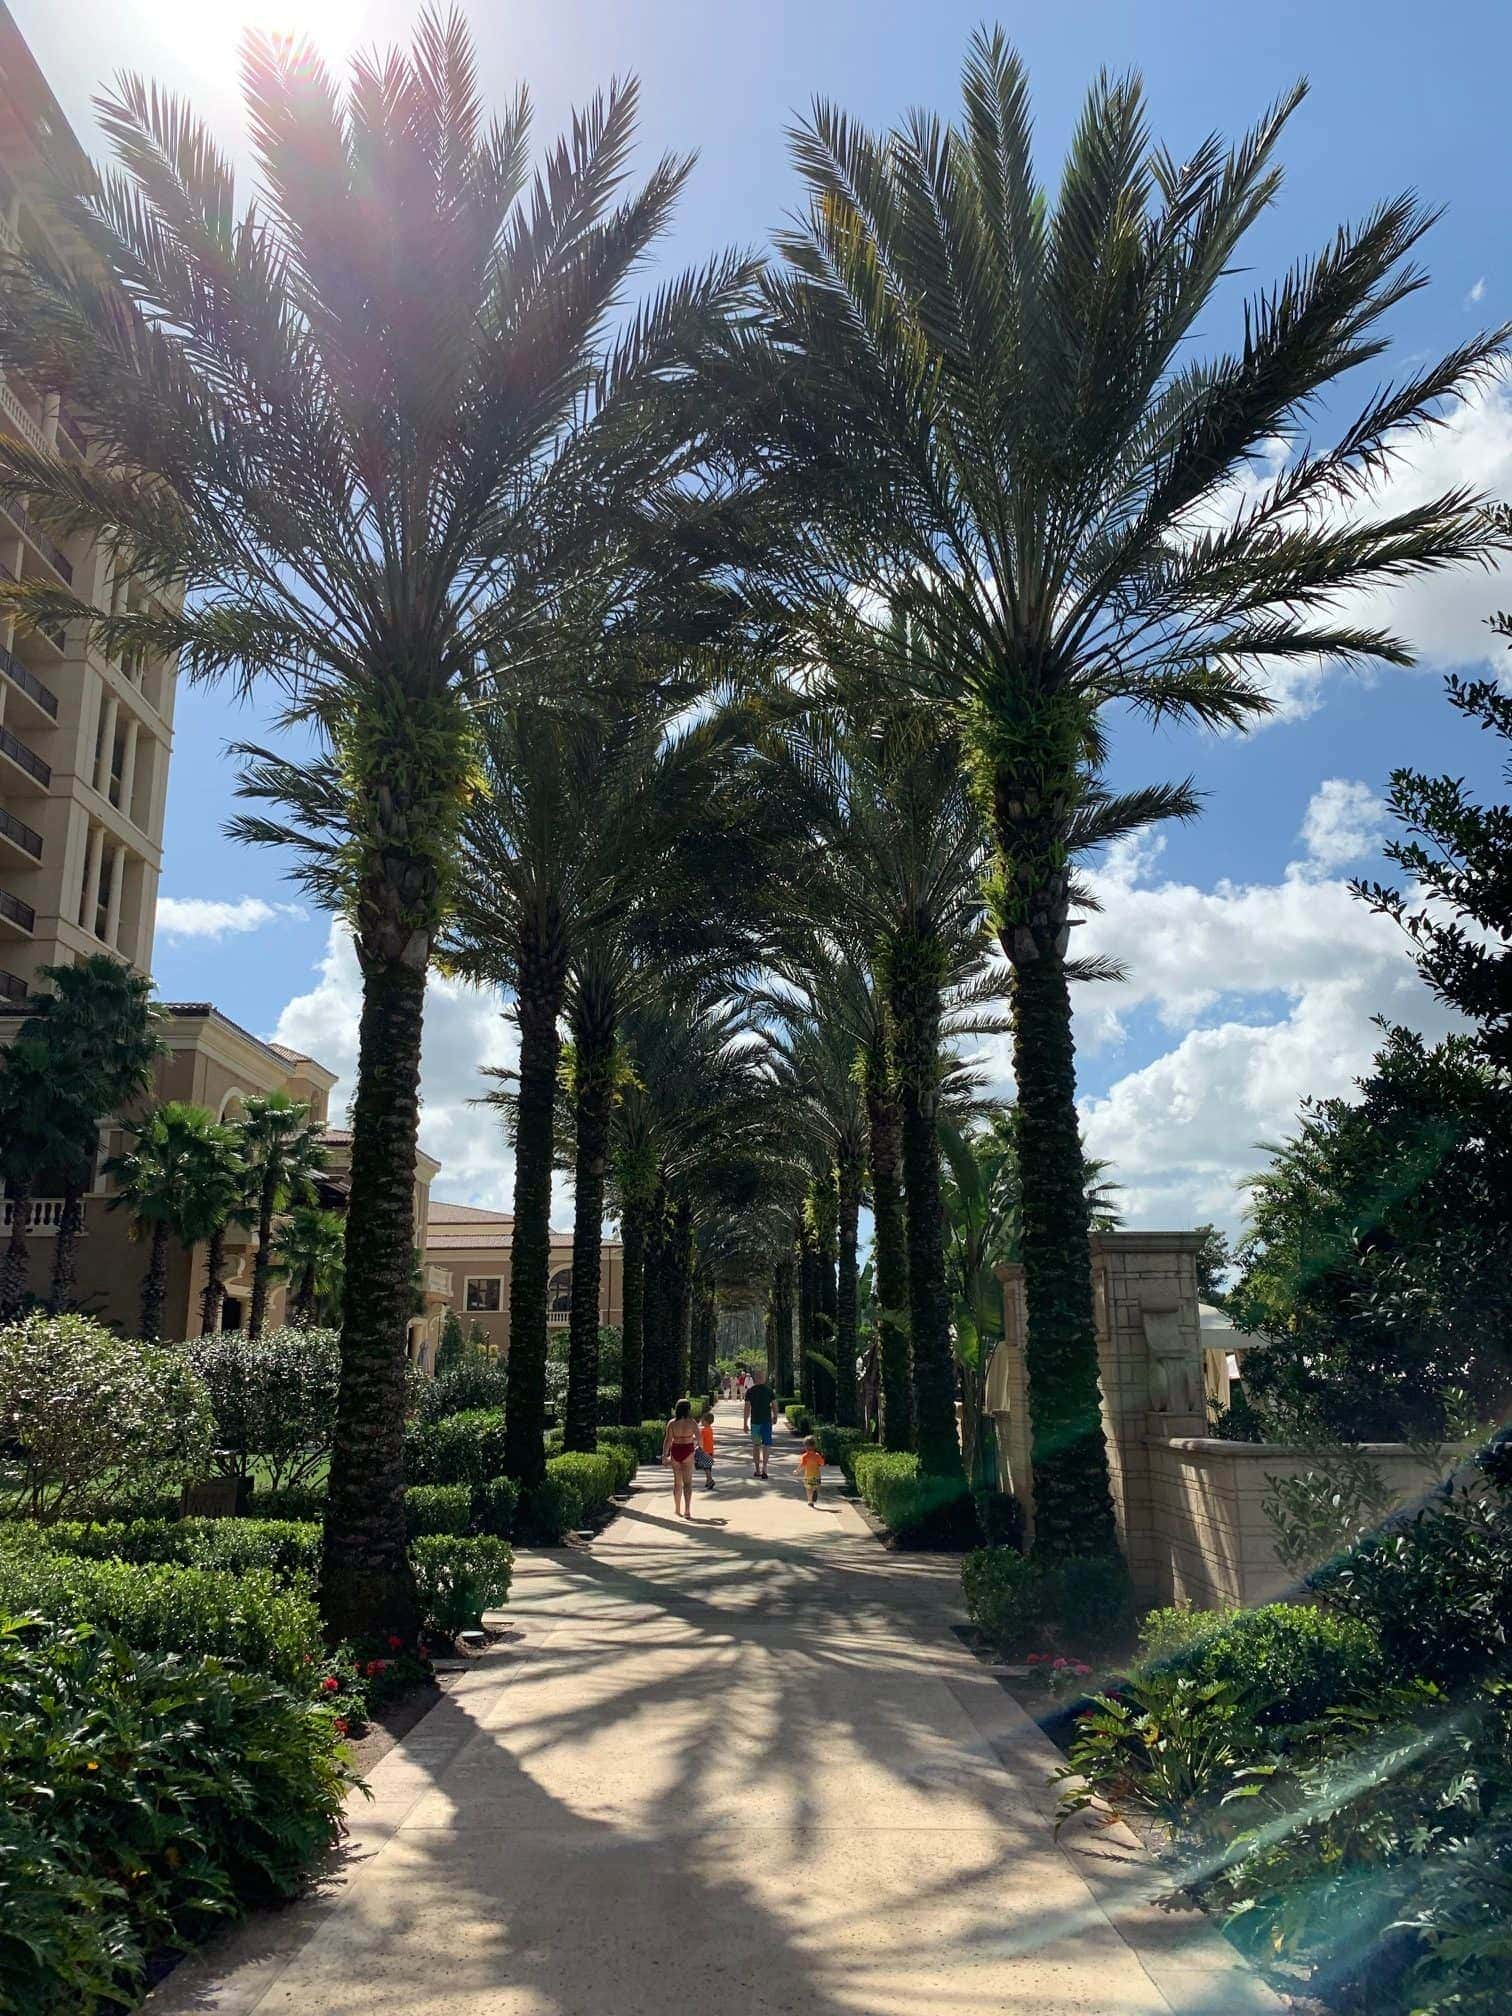 people walking down a path lined with palm trees